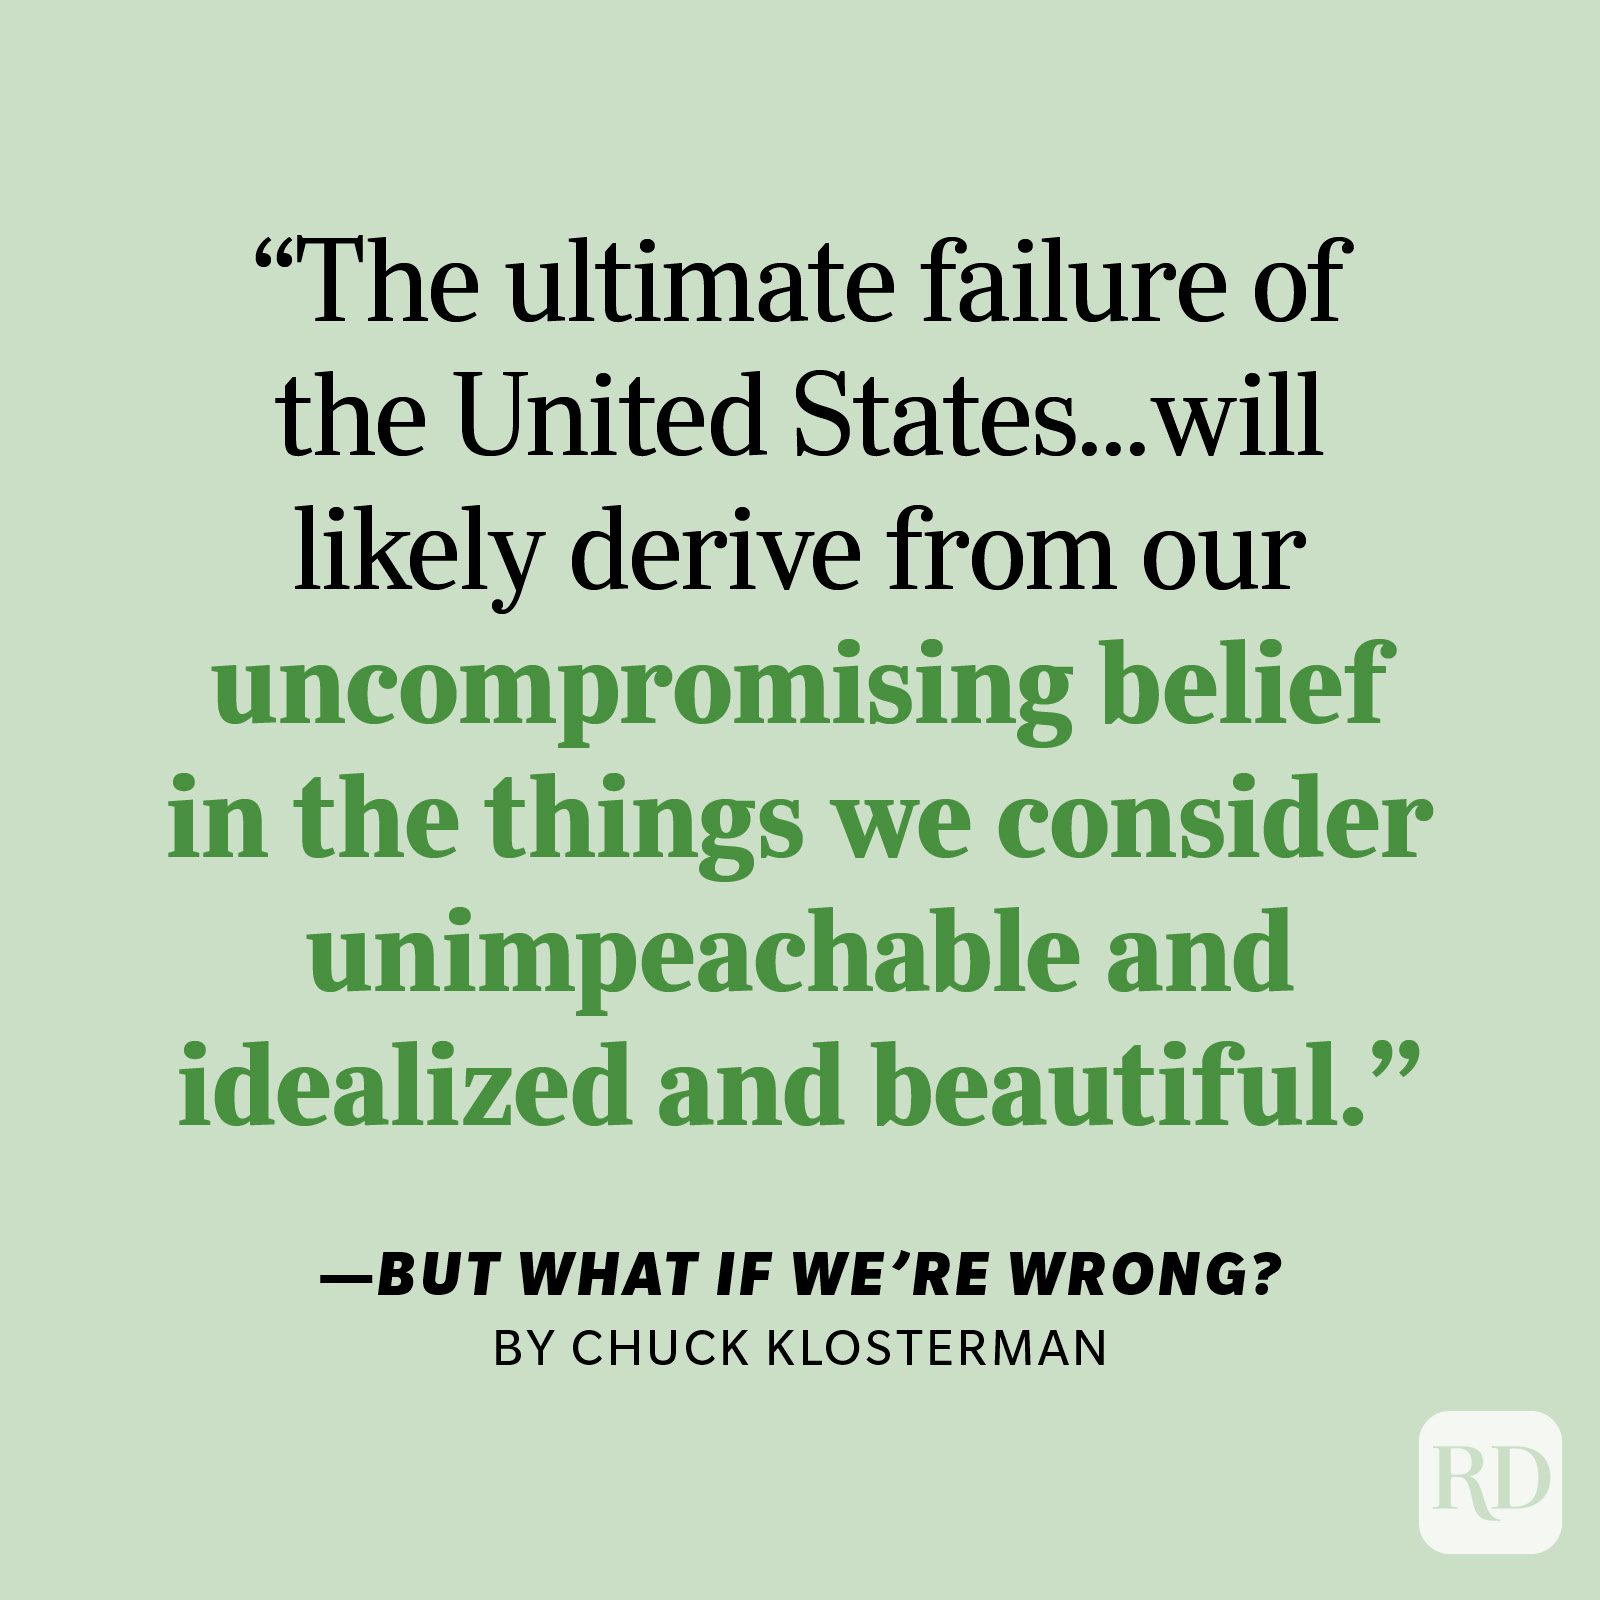 """But What if We're Wrong by Chuck Klosterman """"The ultimate failure of the United States will probably not derive from the problems we see or the conflicts we wage. It will more likely derive from our uncompromising belief in the things we consider unimpeachable and idealized and beautiful. Because every strength is a weakness if given enough time."""""""